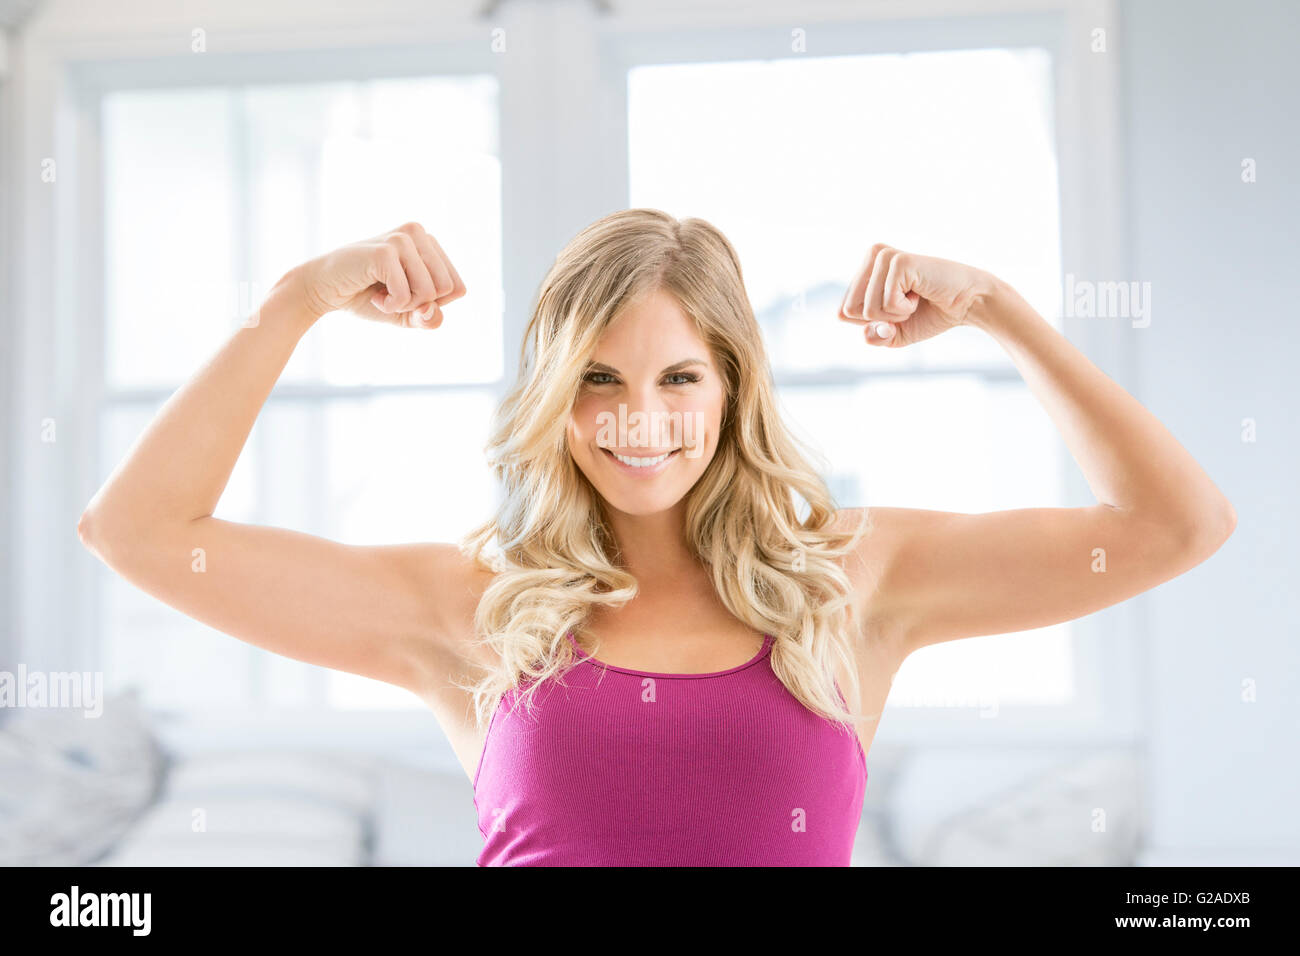 Smiling blonde woman flexing muscles - Stock Image